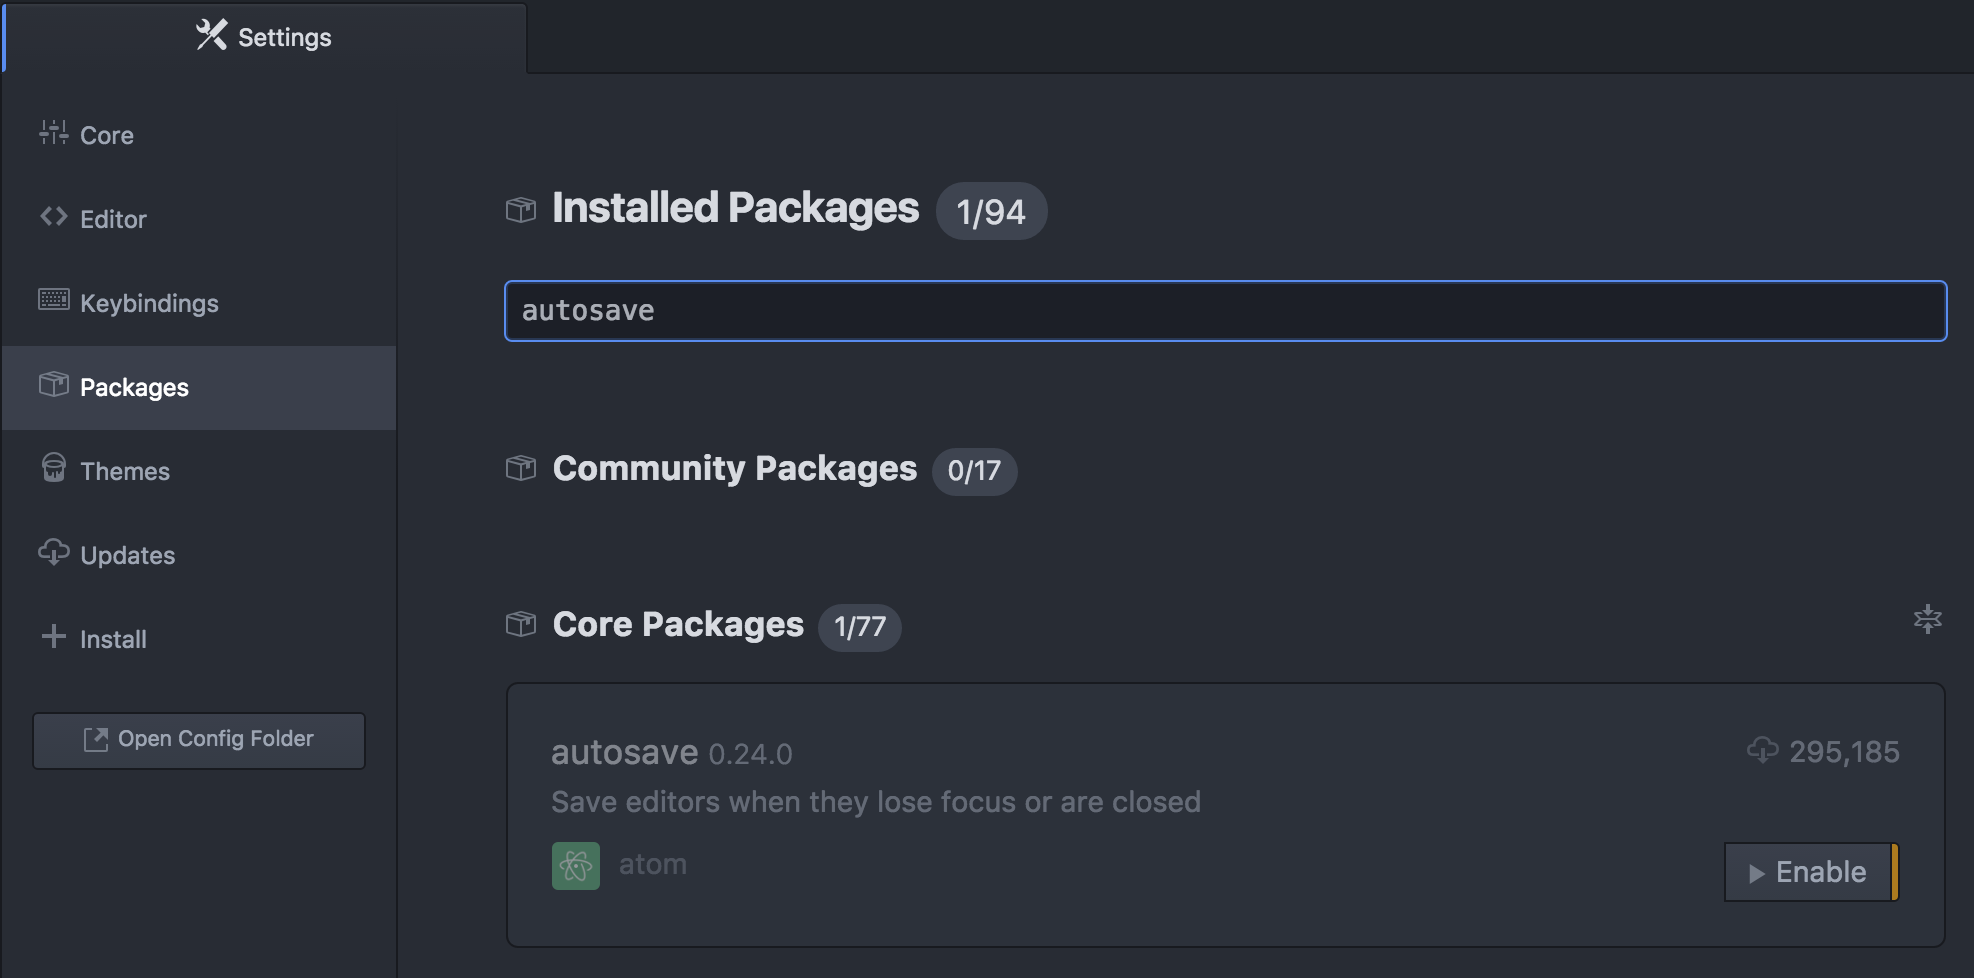 Atom editor showing the available packages after using the Filter with the search term, 'autosave.' The package 'autosave' is available, but in a disabled state. Information about the 'autosave' package and a button labelled 'Enable' is presented.